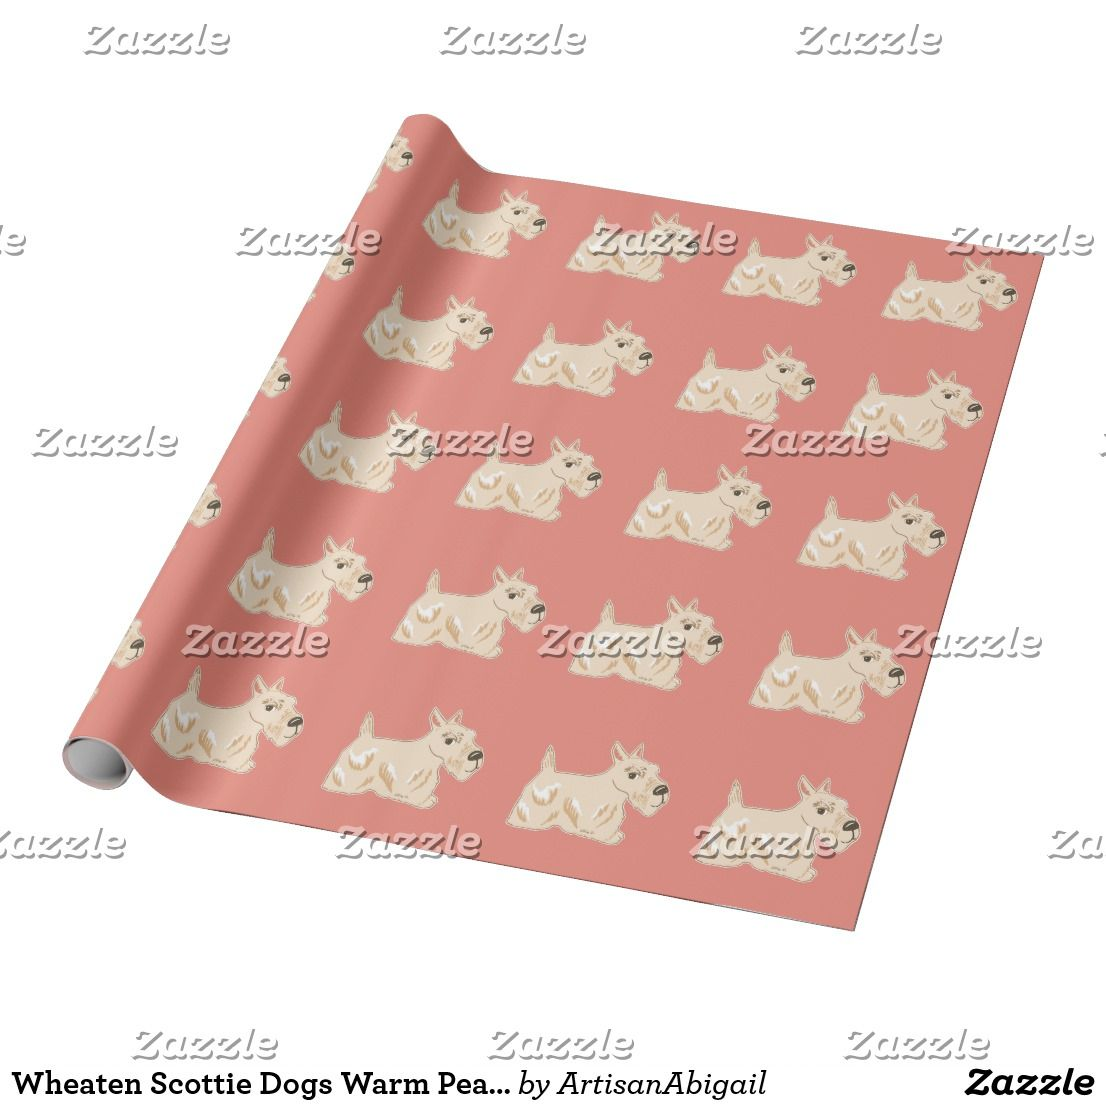 Wheaten Scottie Dogs Warm Peach Wrapping Paper ArtisanAbigail At Zazzle